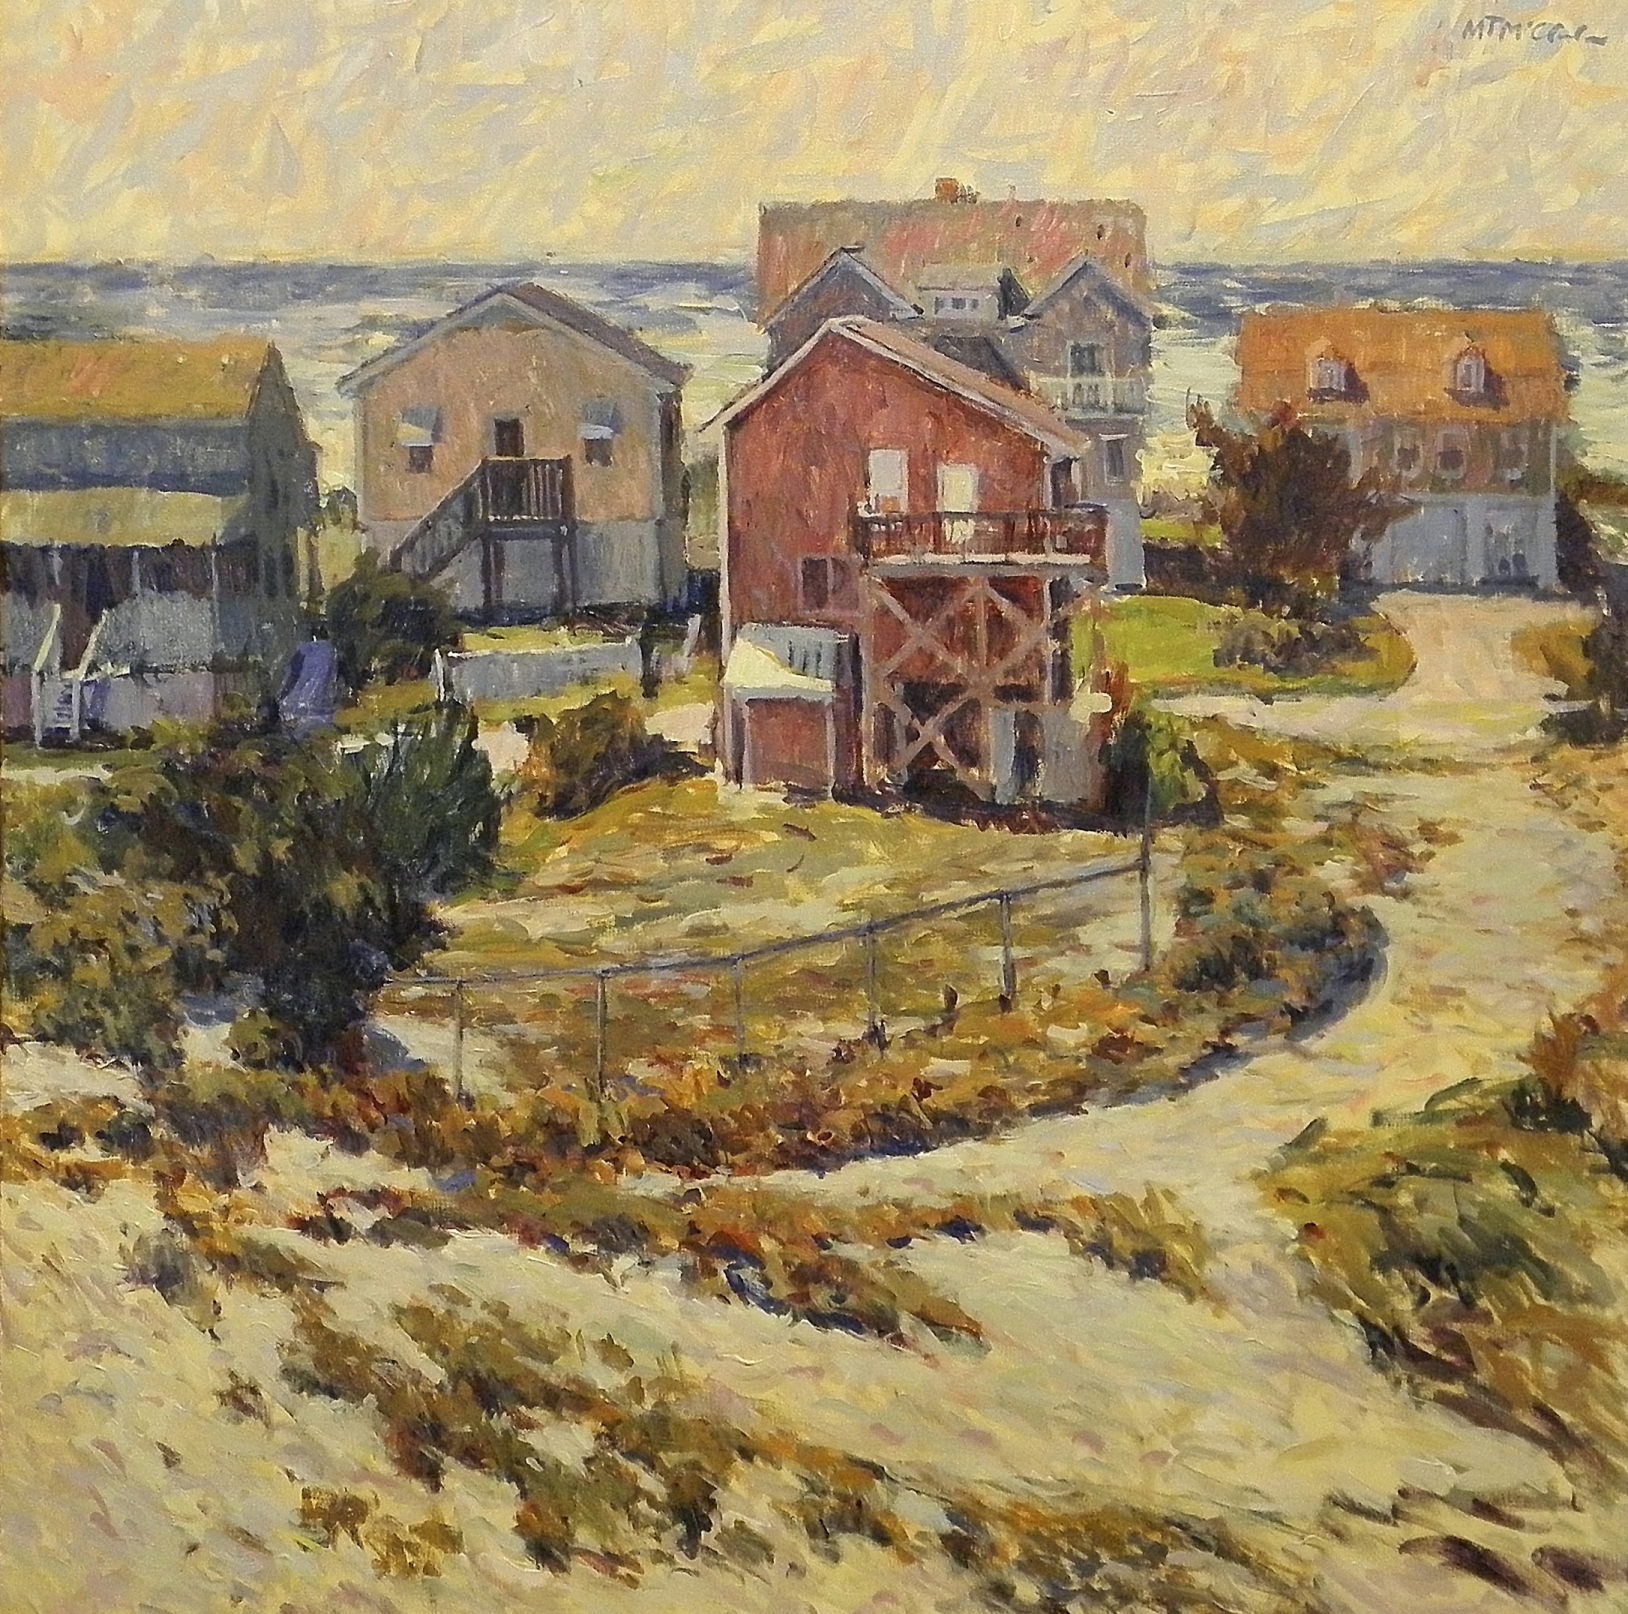 Crescent Path by  M.T. McClanahan - Masterpiece Online